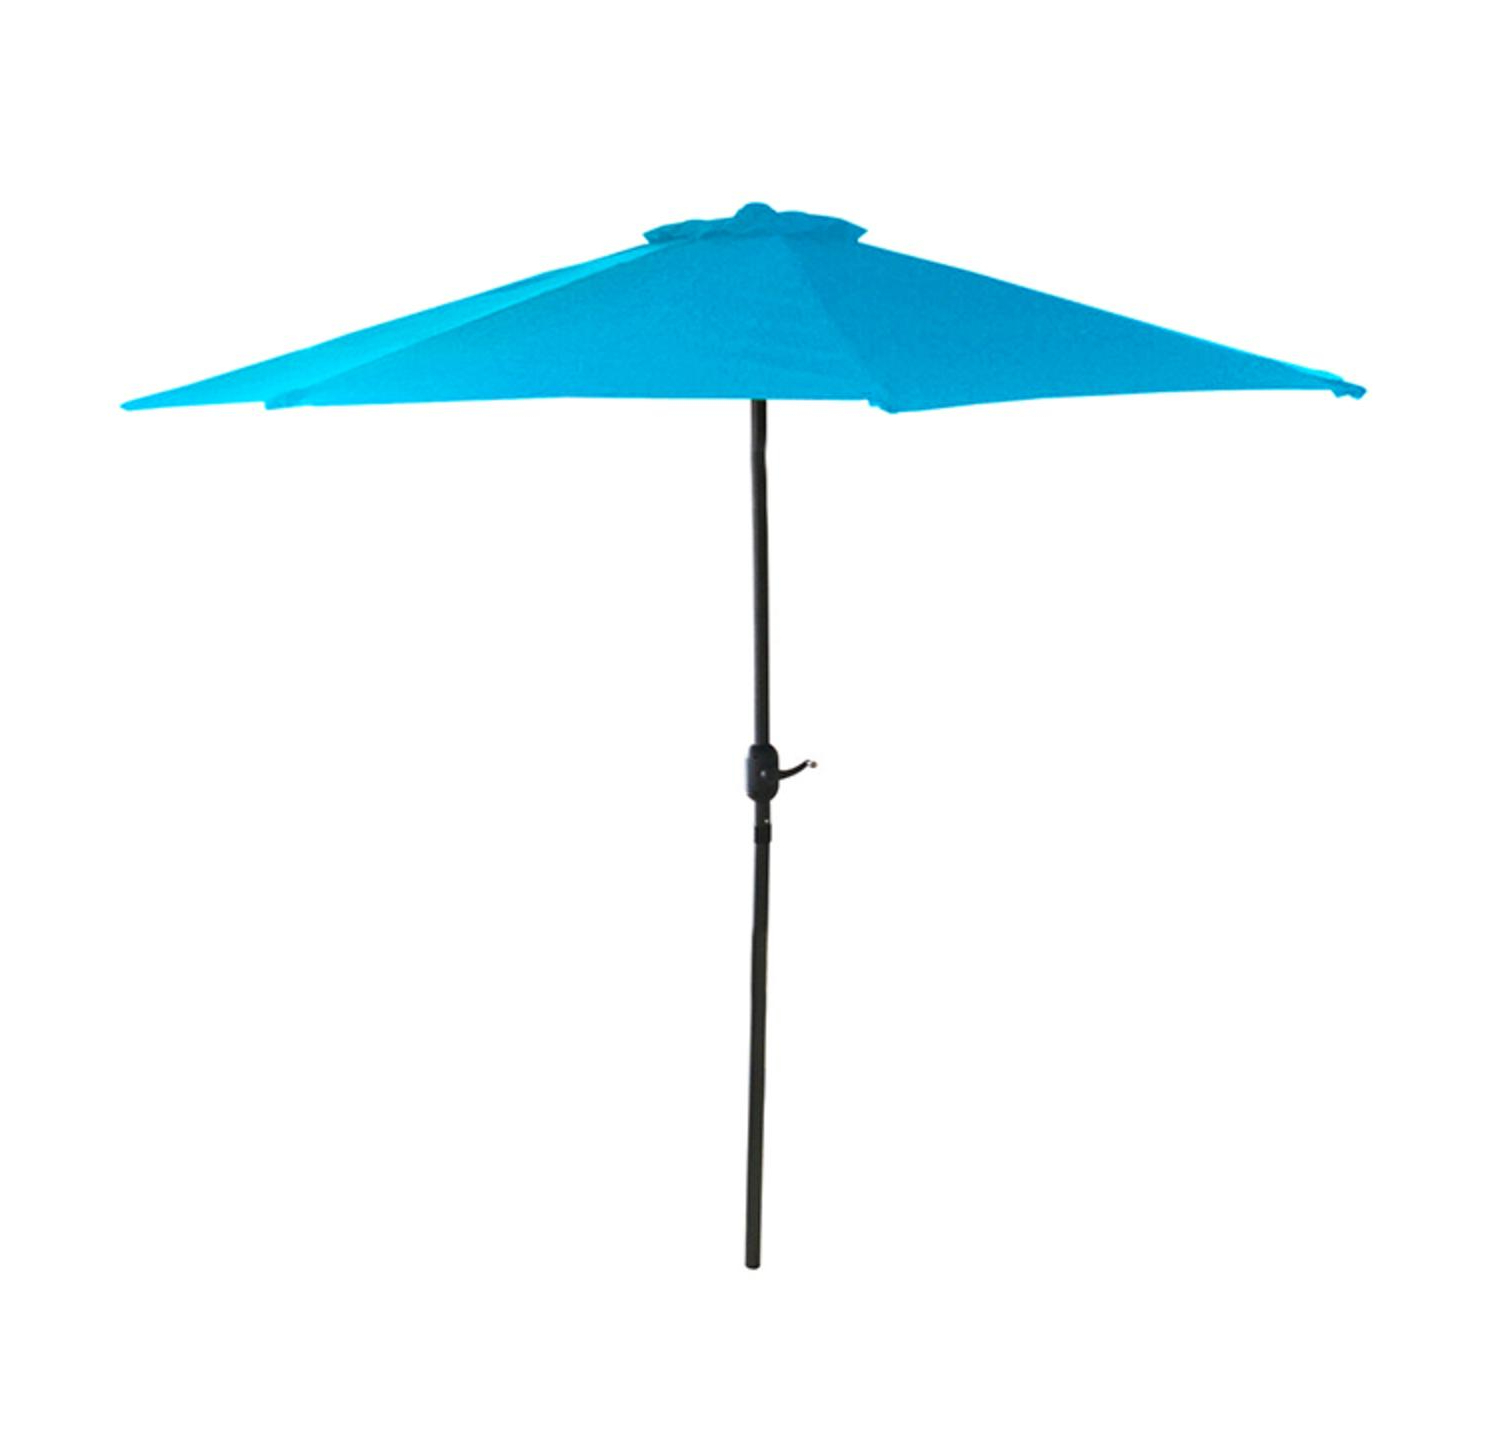 Lb International 6.5' Octagon Solid Outdoor Patio Market Umbrella With Hand Crank – Blue With Regard To Well Liked Solid Market Umbrellas (Gallery 5 of 20)